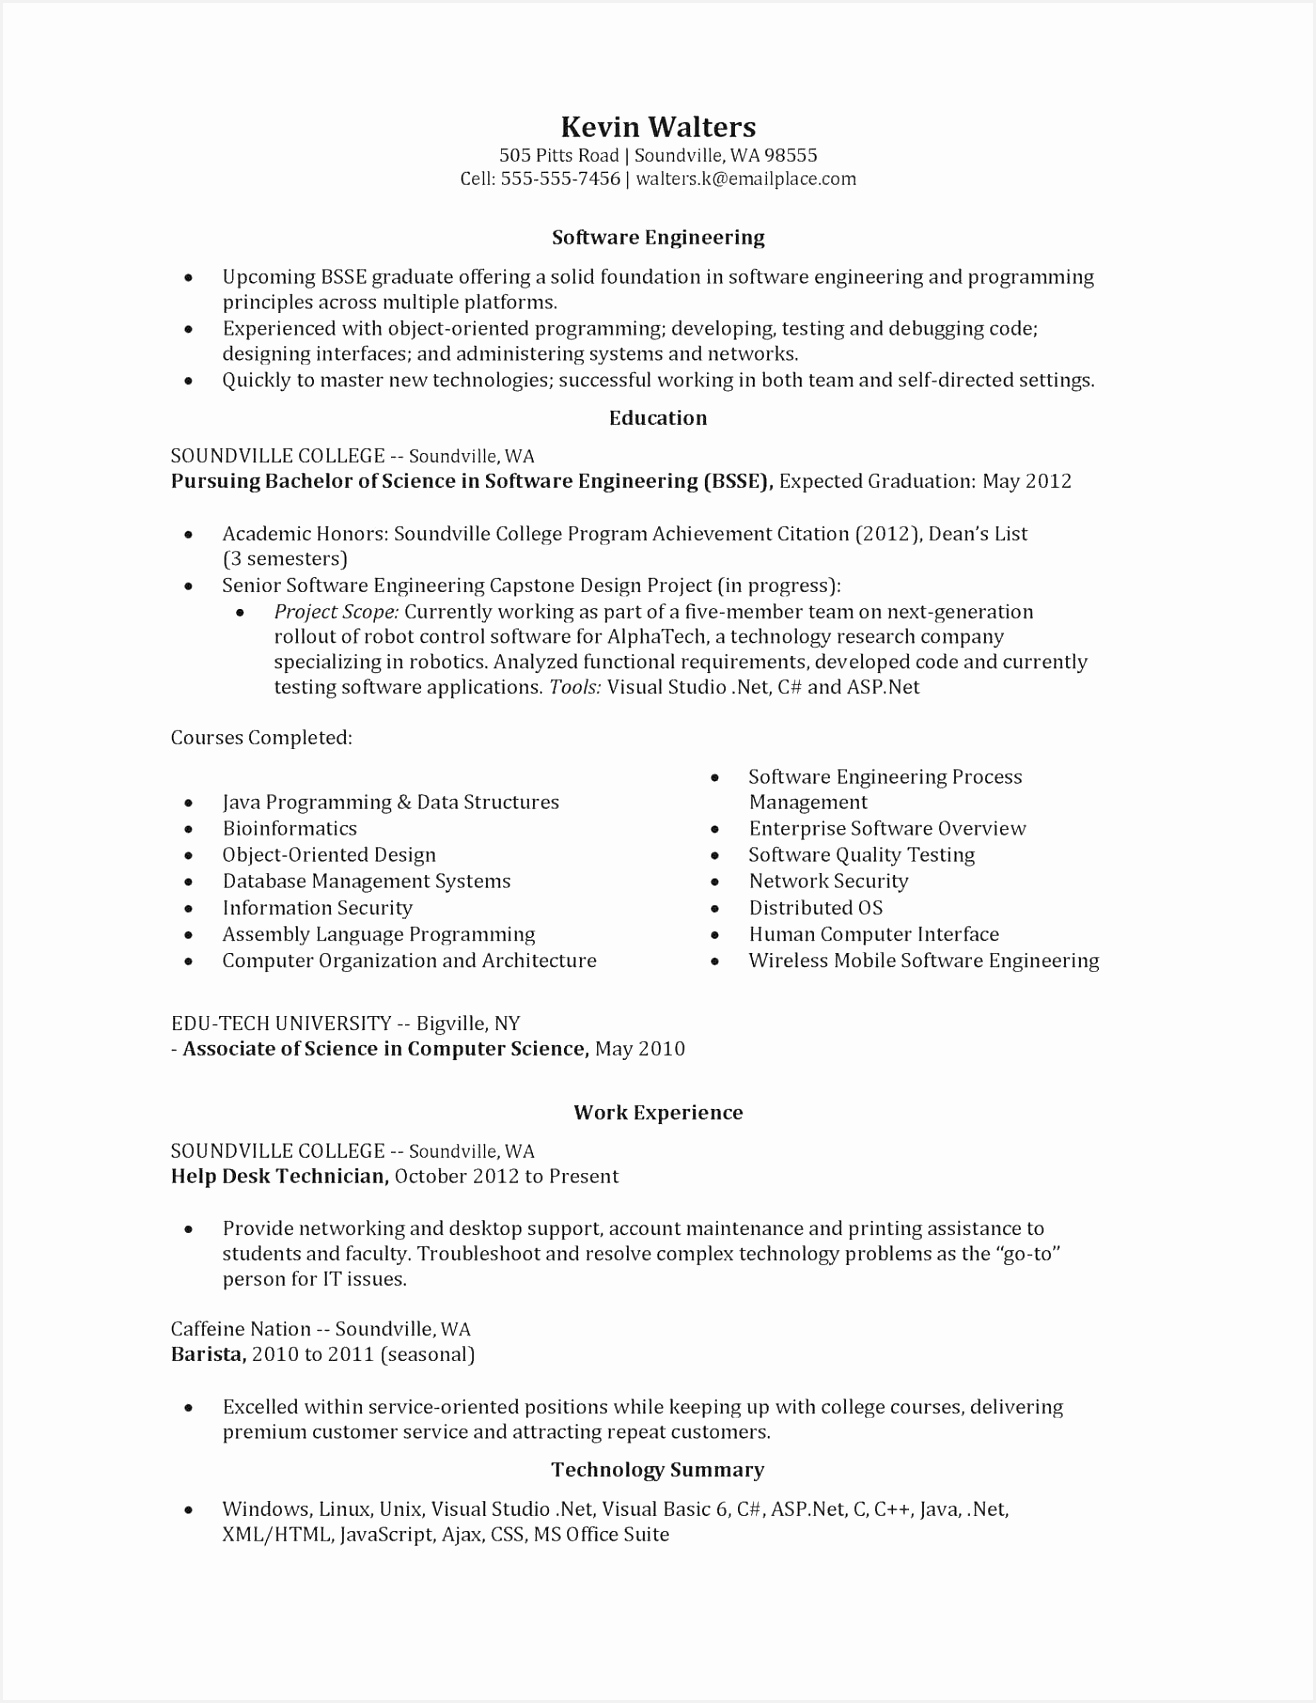 Resume Samples for Graduate School Qcsae Lovely Graduate School Resume Examples Unique Lpn Resume Sample New Line Of Resume Samples for Graduate School Dhwab Lovely Resume for Graduate School Sample – Med School Resume Template